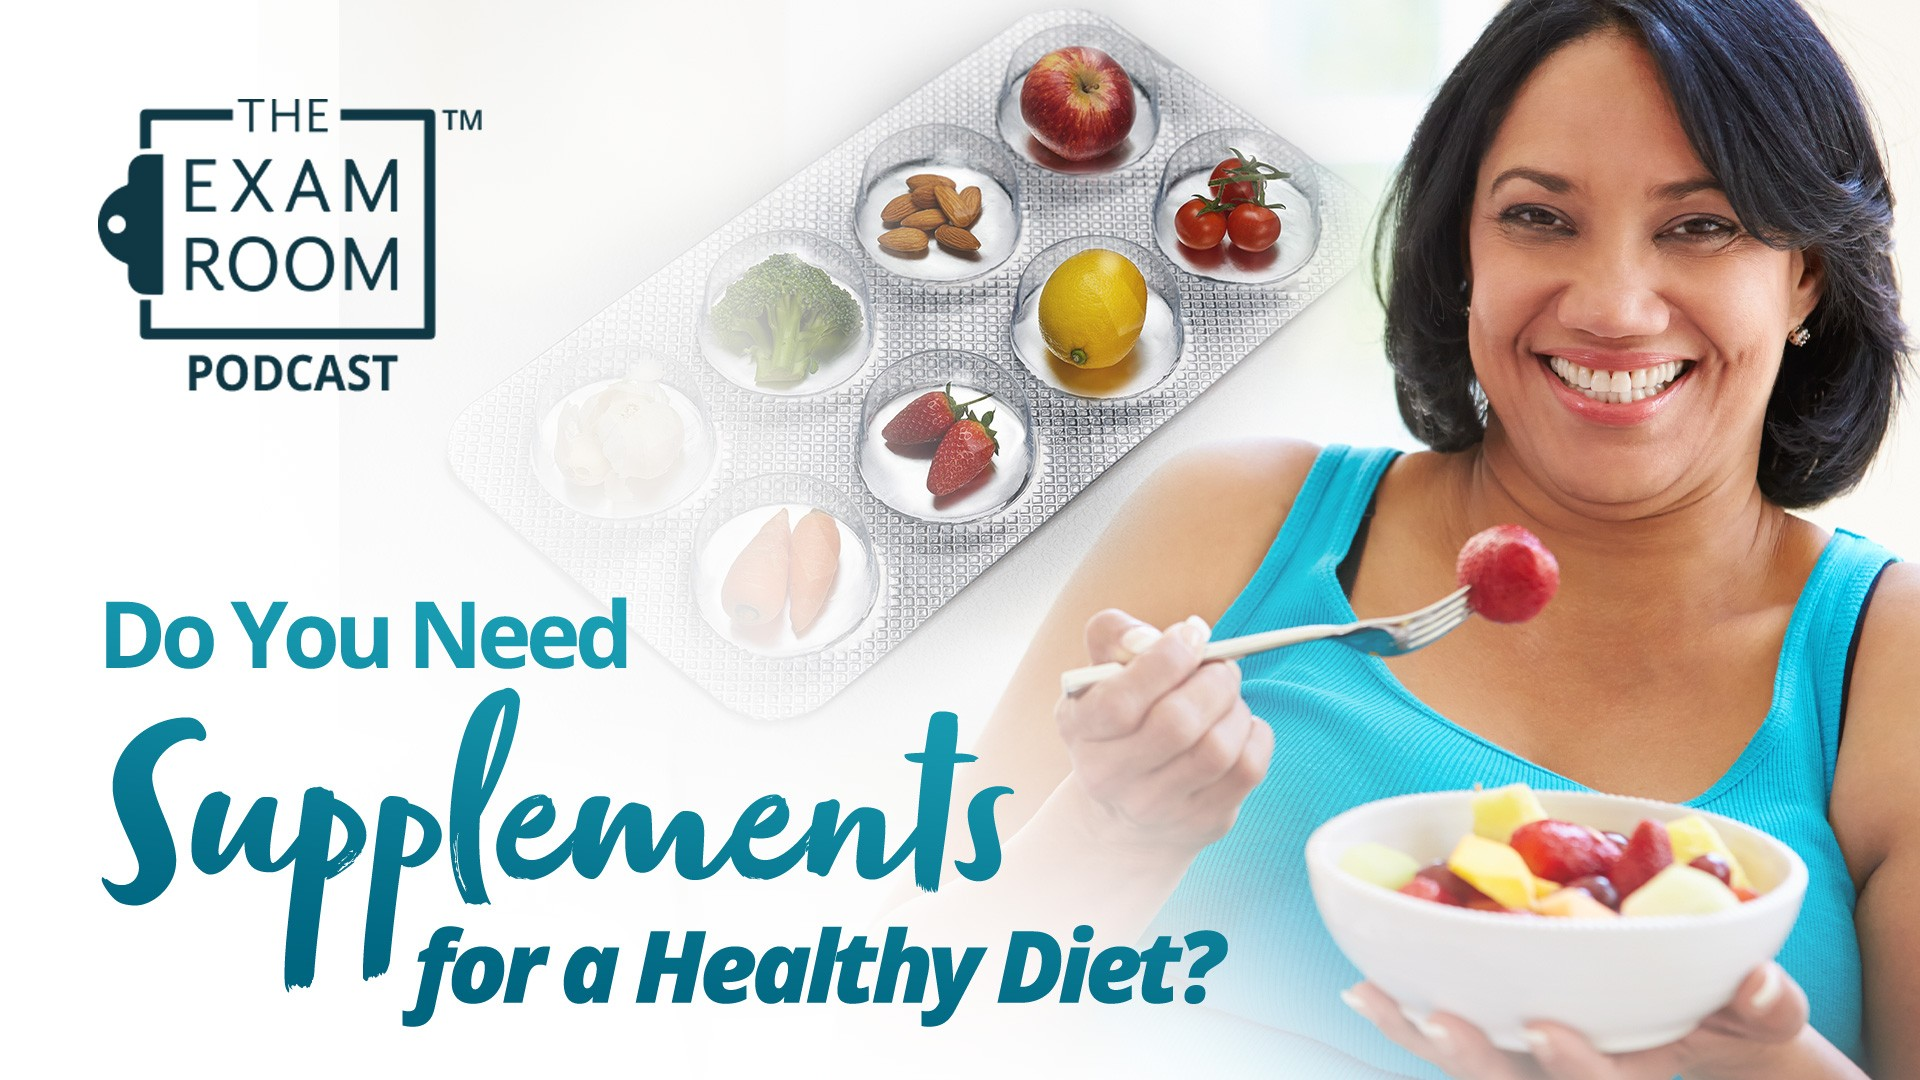 Do You Need Supplements for a Healthy Diet?